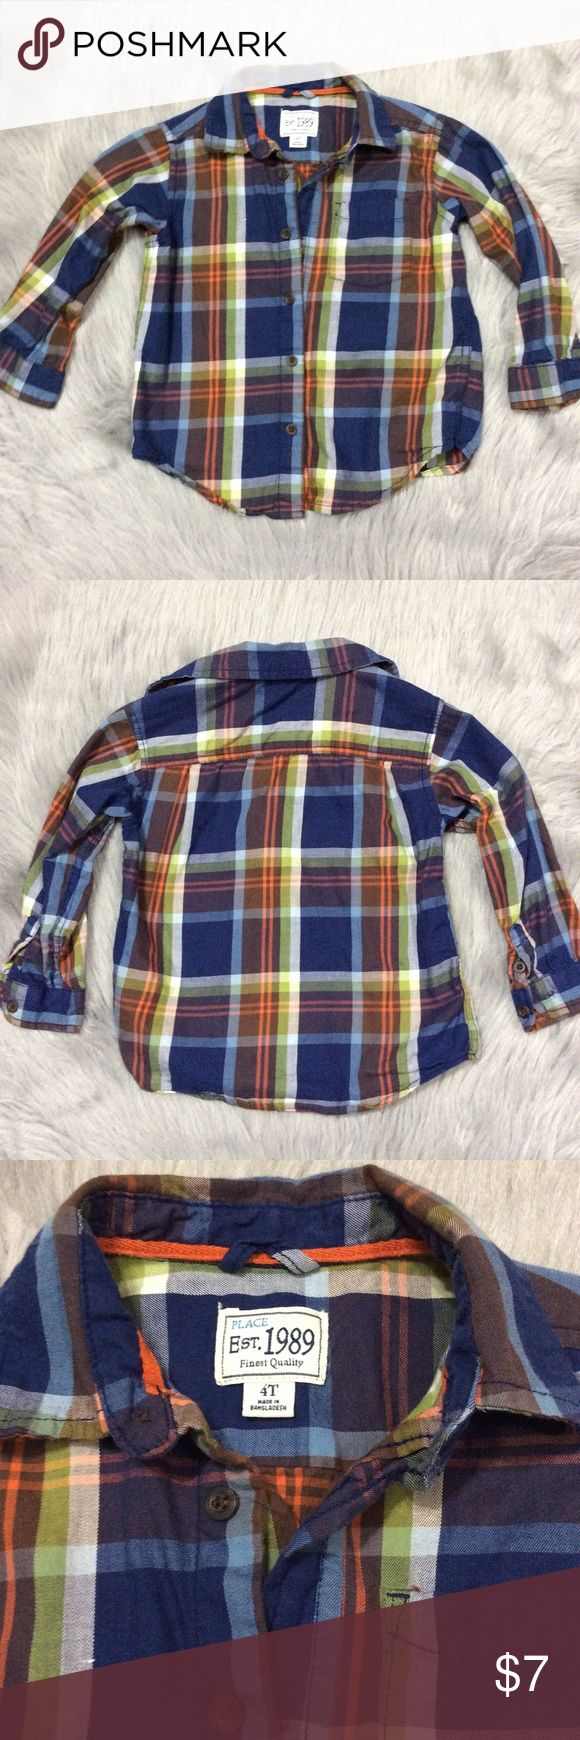 Boy's dress shirt Nice boy's dress shirt in excellent condition. Bundle for more discounts Children's Place Shirts & Tops Button Down Shirts